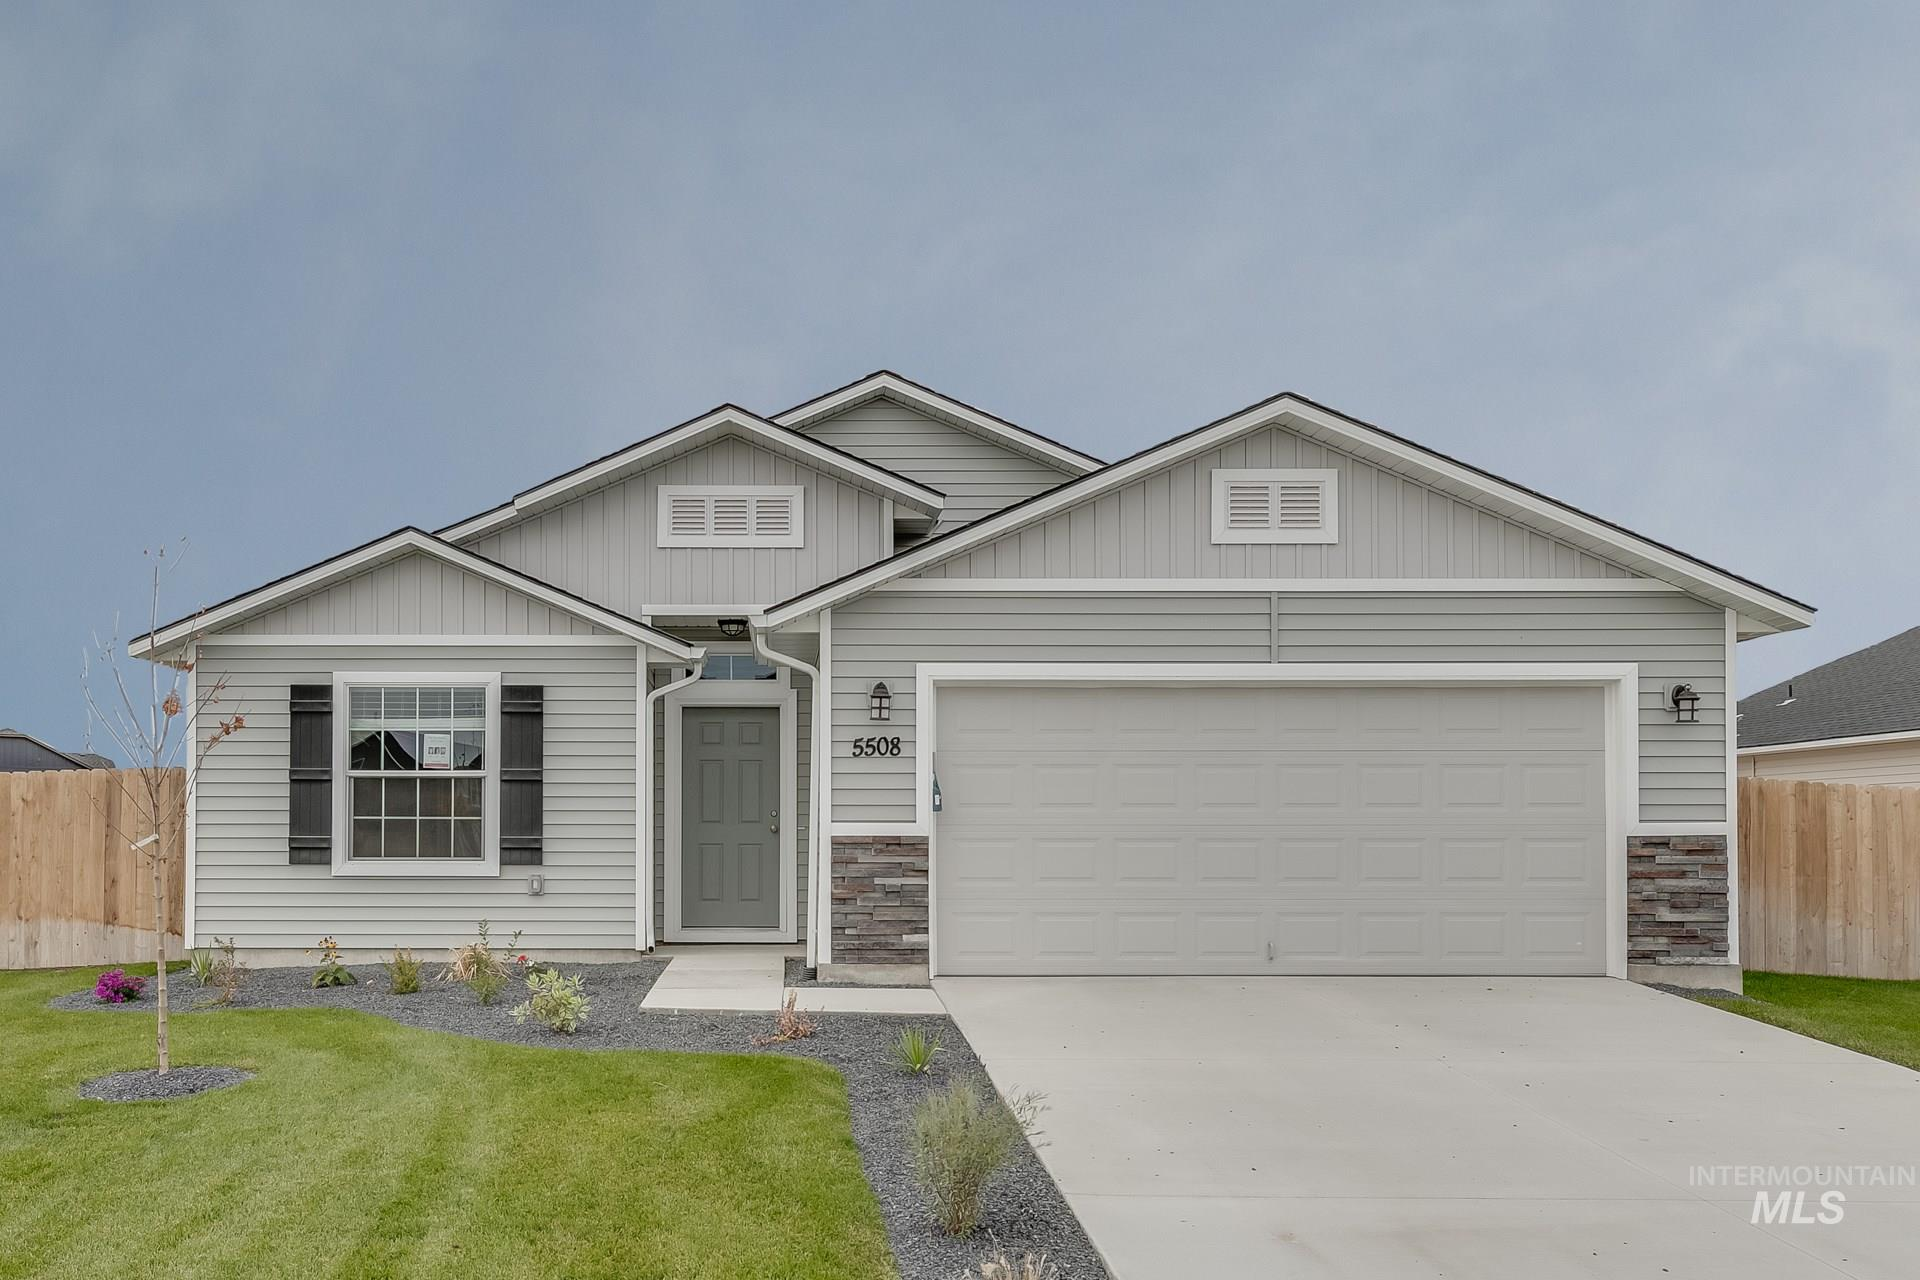 12798 Sondra St. Property Photo - Caldwell, ID real estate listing